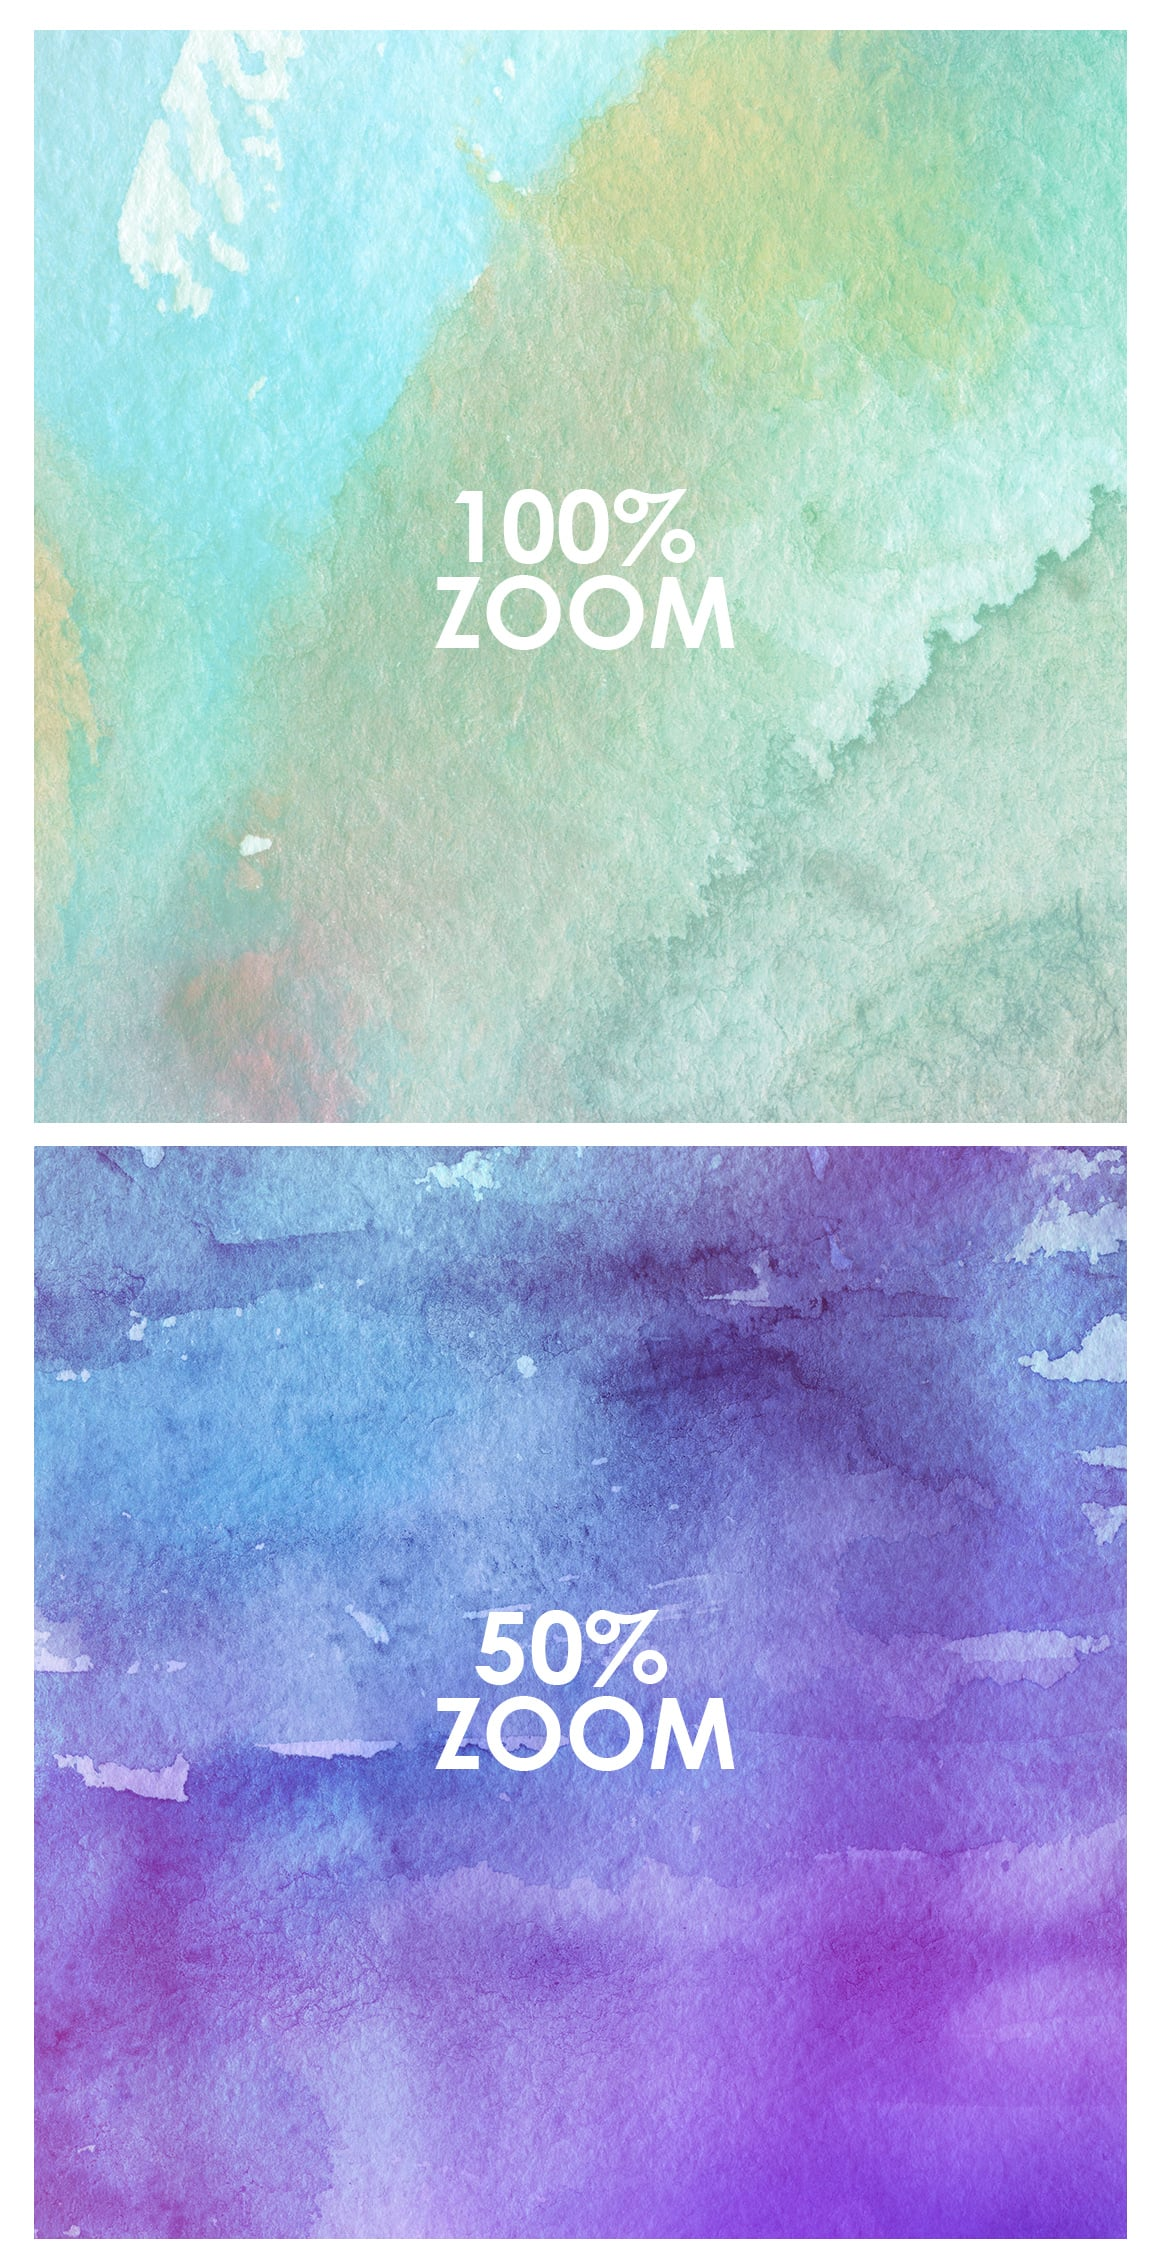 540+ Watercolor Backgrounds Bundle - 544 Items. Only $18! - 100 watercolor backgrounds prev 5 o